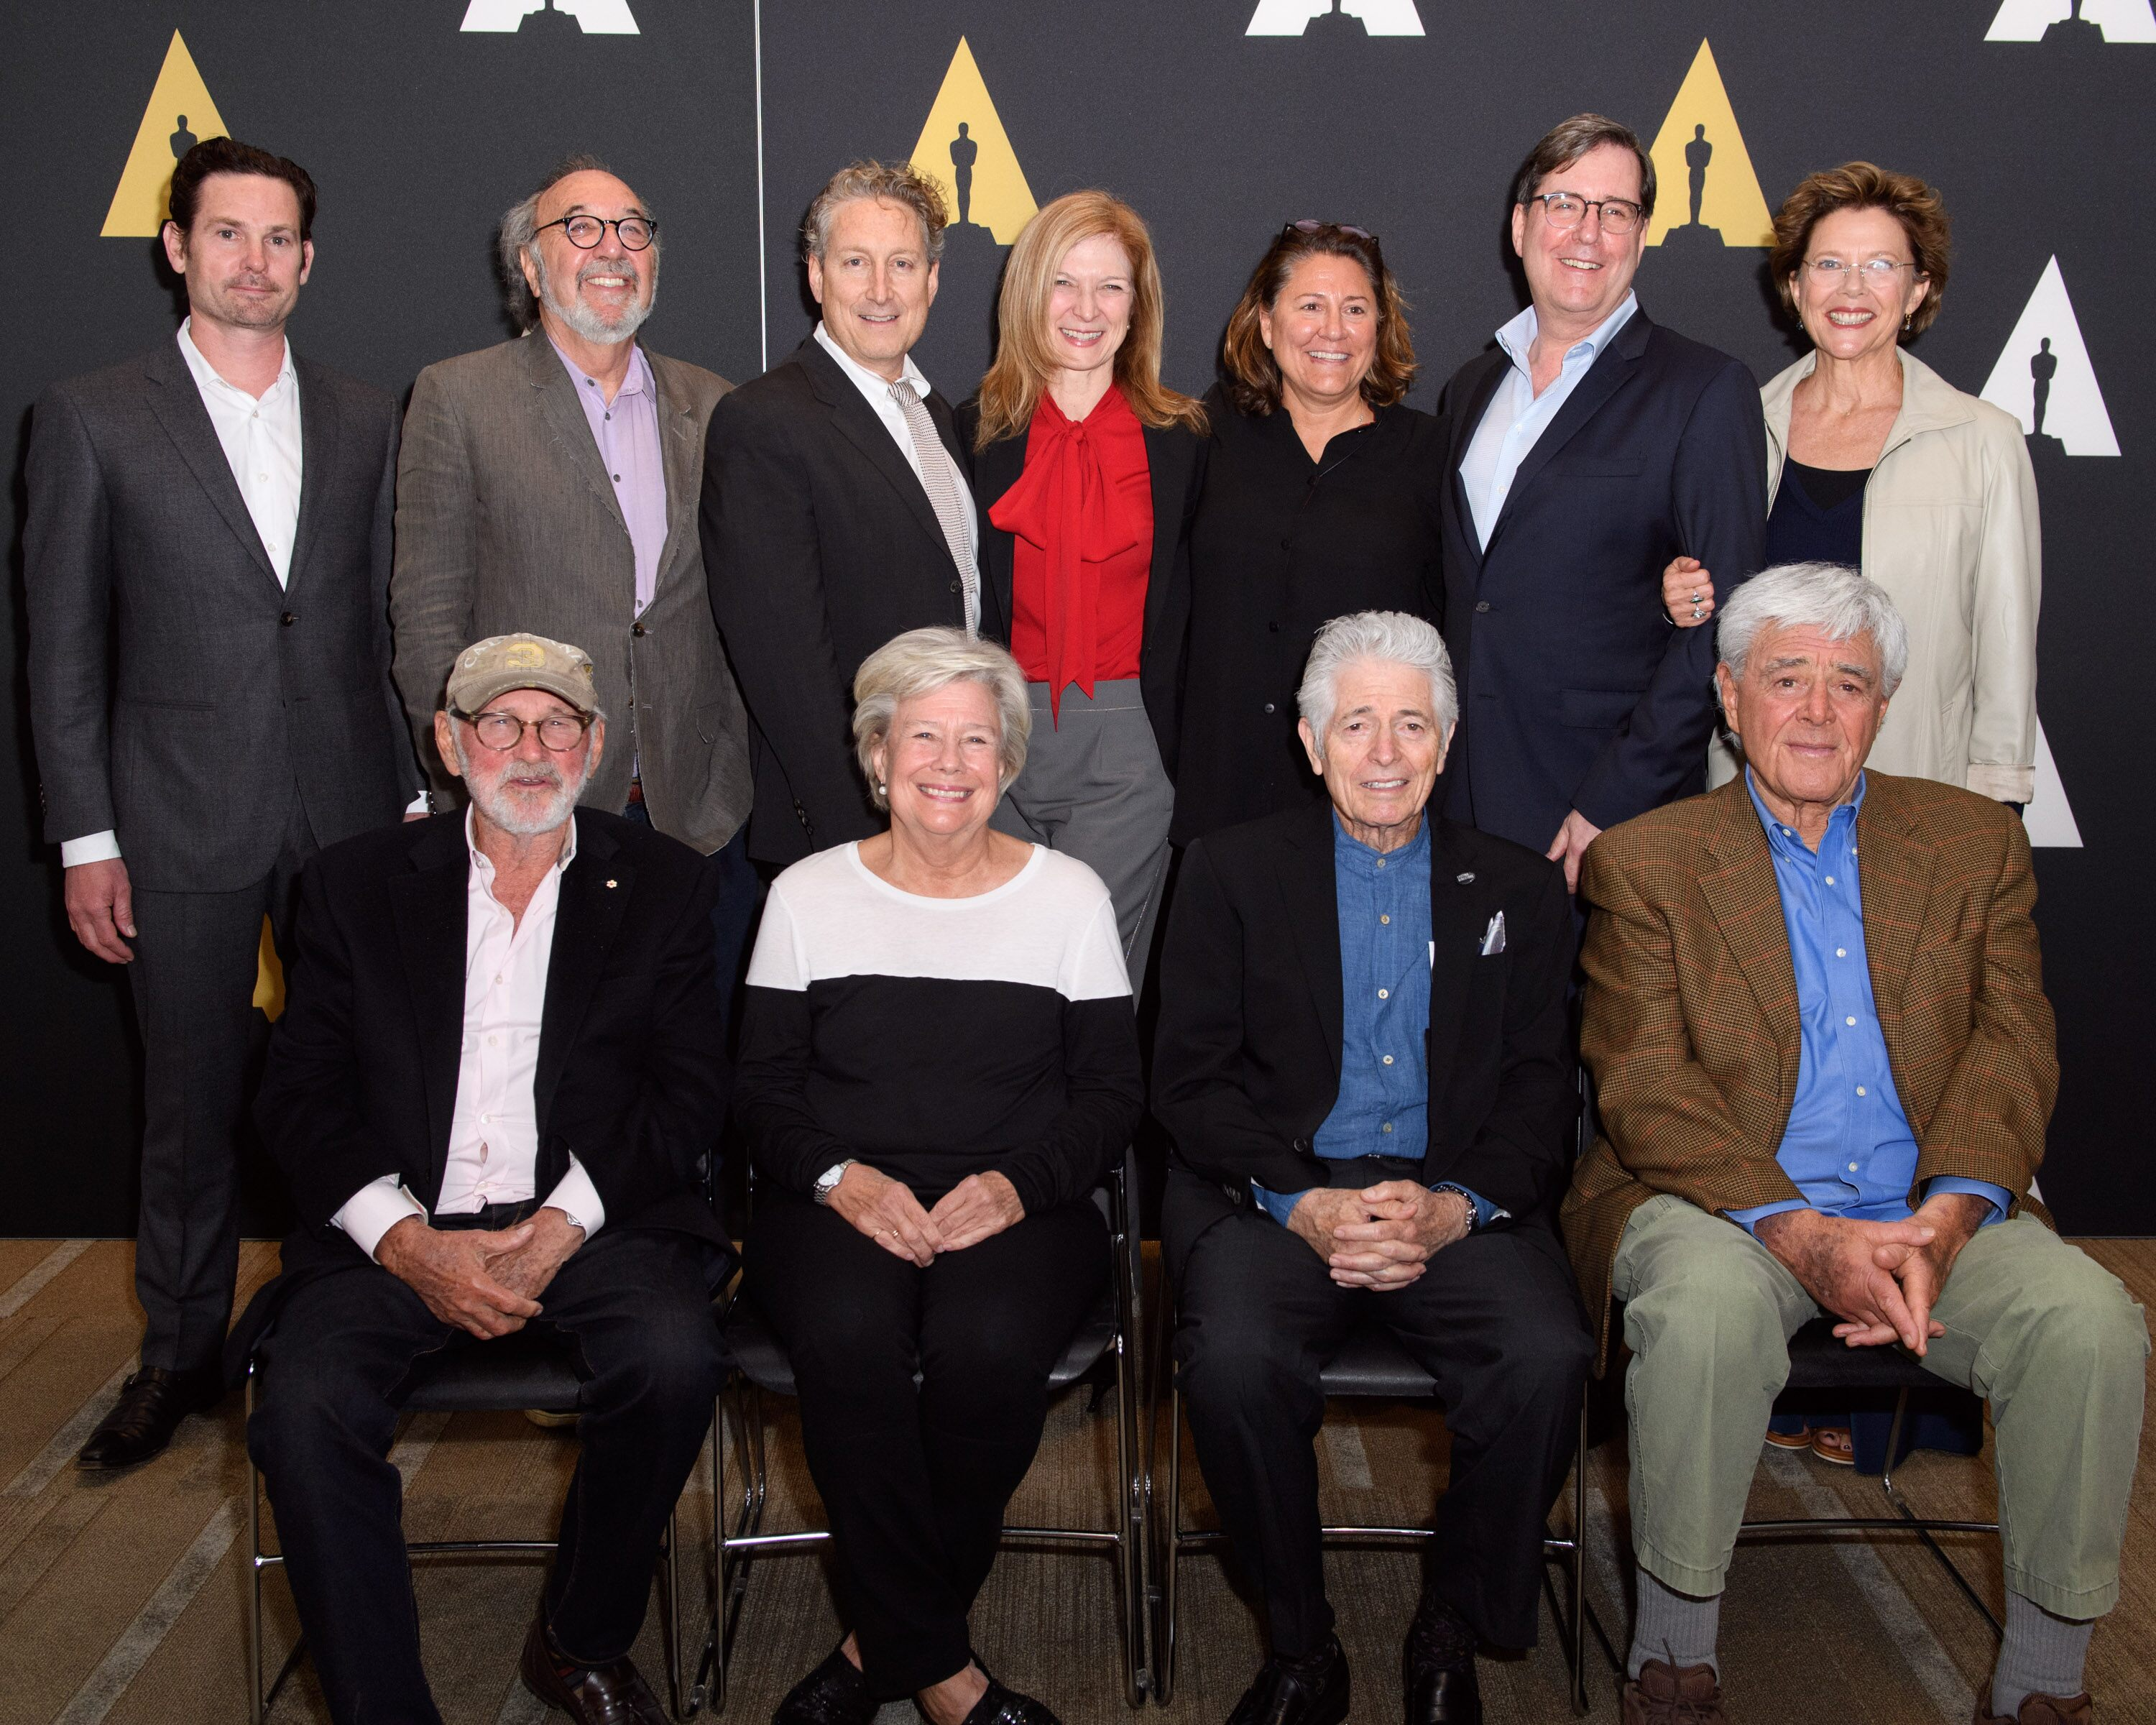 Pictured (left to right): Henry Thomas, Norman Jewison (seated), James L. Brooks, Bernard Telsey, Juliet Taylor (seated), Dawn Hudson, Lora Kennedy, Mike Fenton (seated), David Rubin, Richard Donner (seated) and Annette Bening.